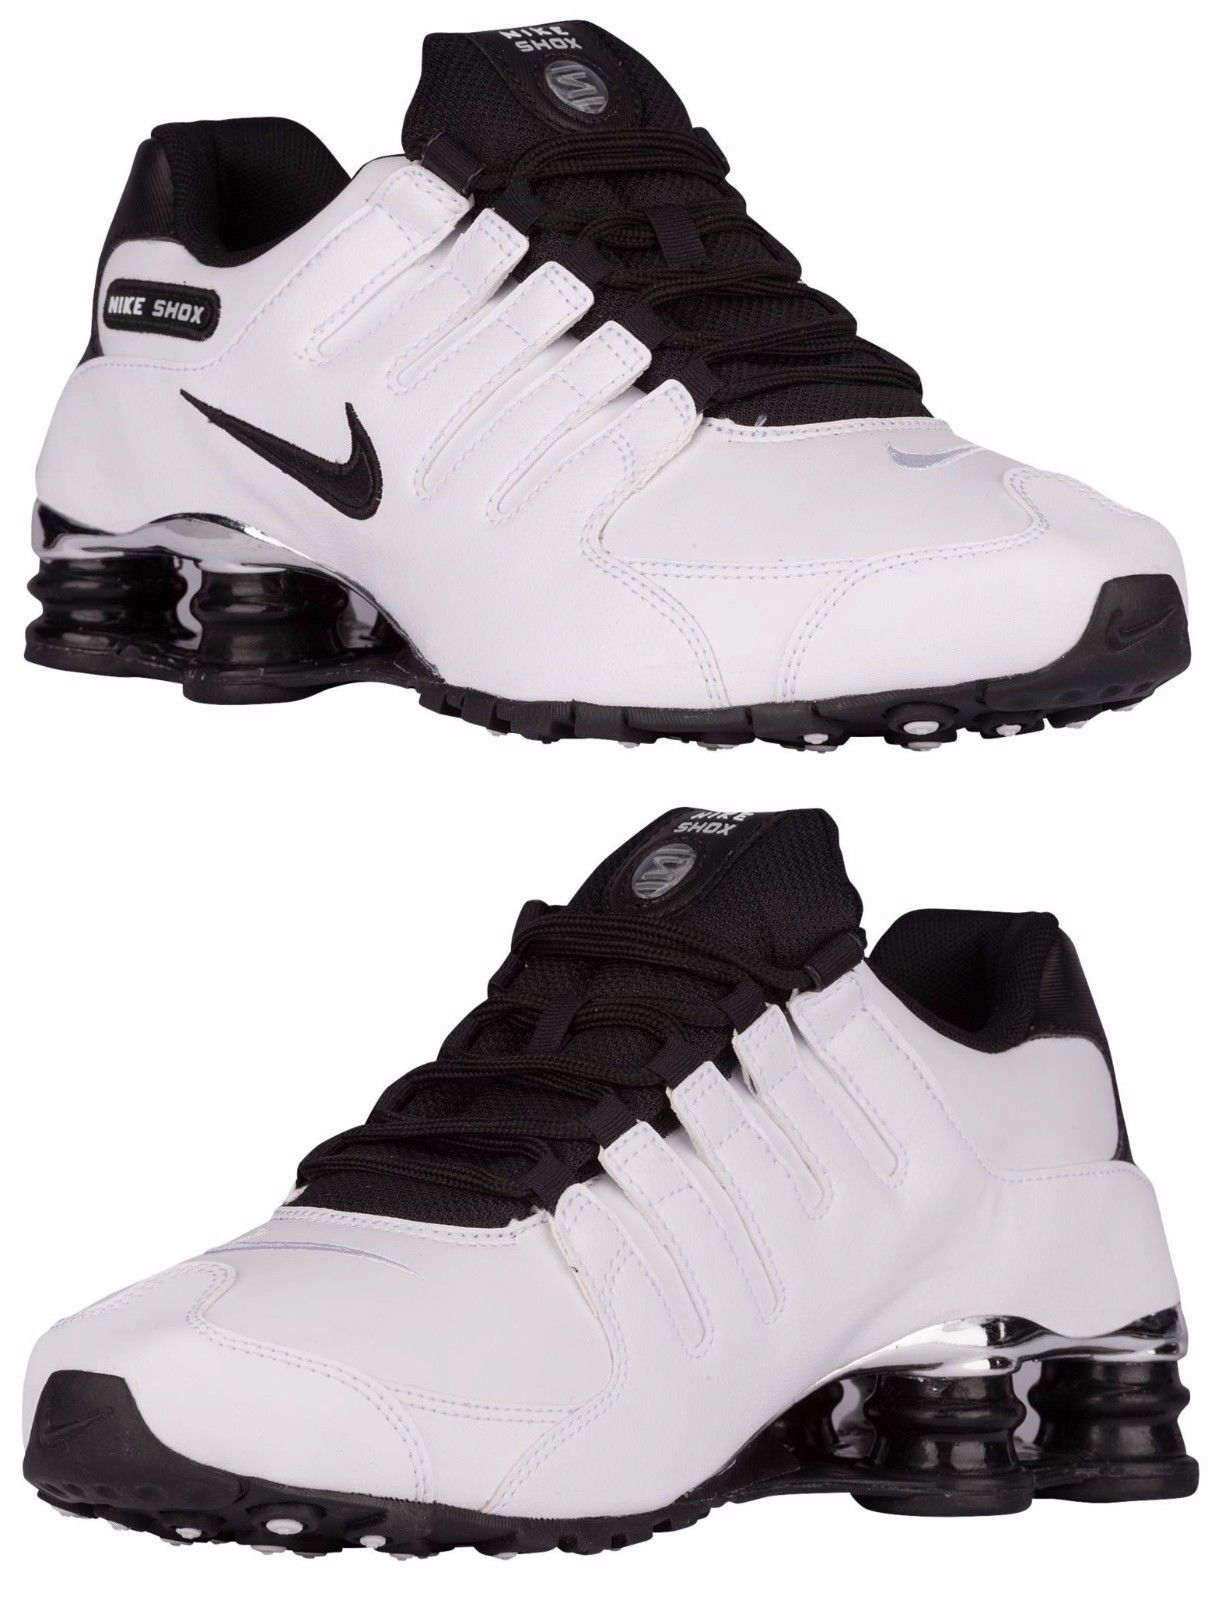 NIKE SHOX NZ PRE MENs LEATHER M RUNNING WHITE - BLACK - WOLF GREY  AUTHENTIC NEW